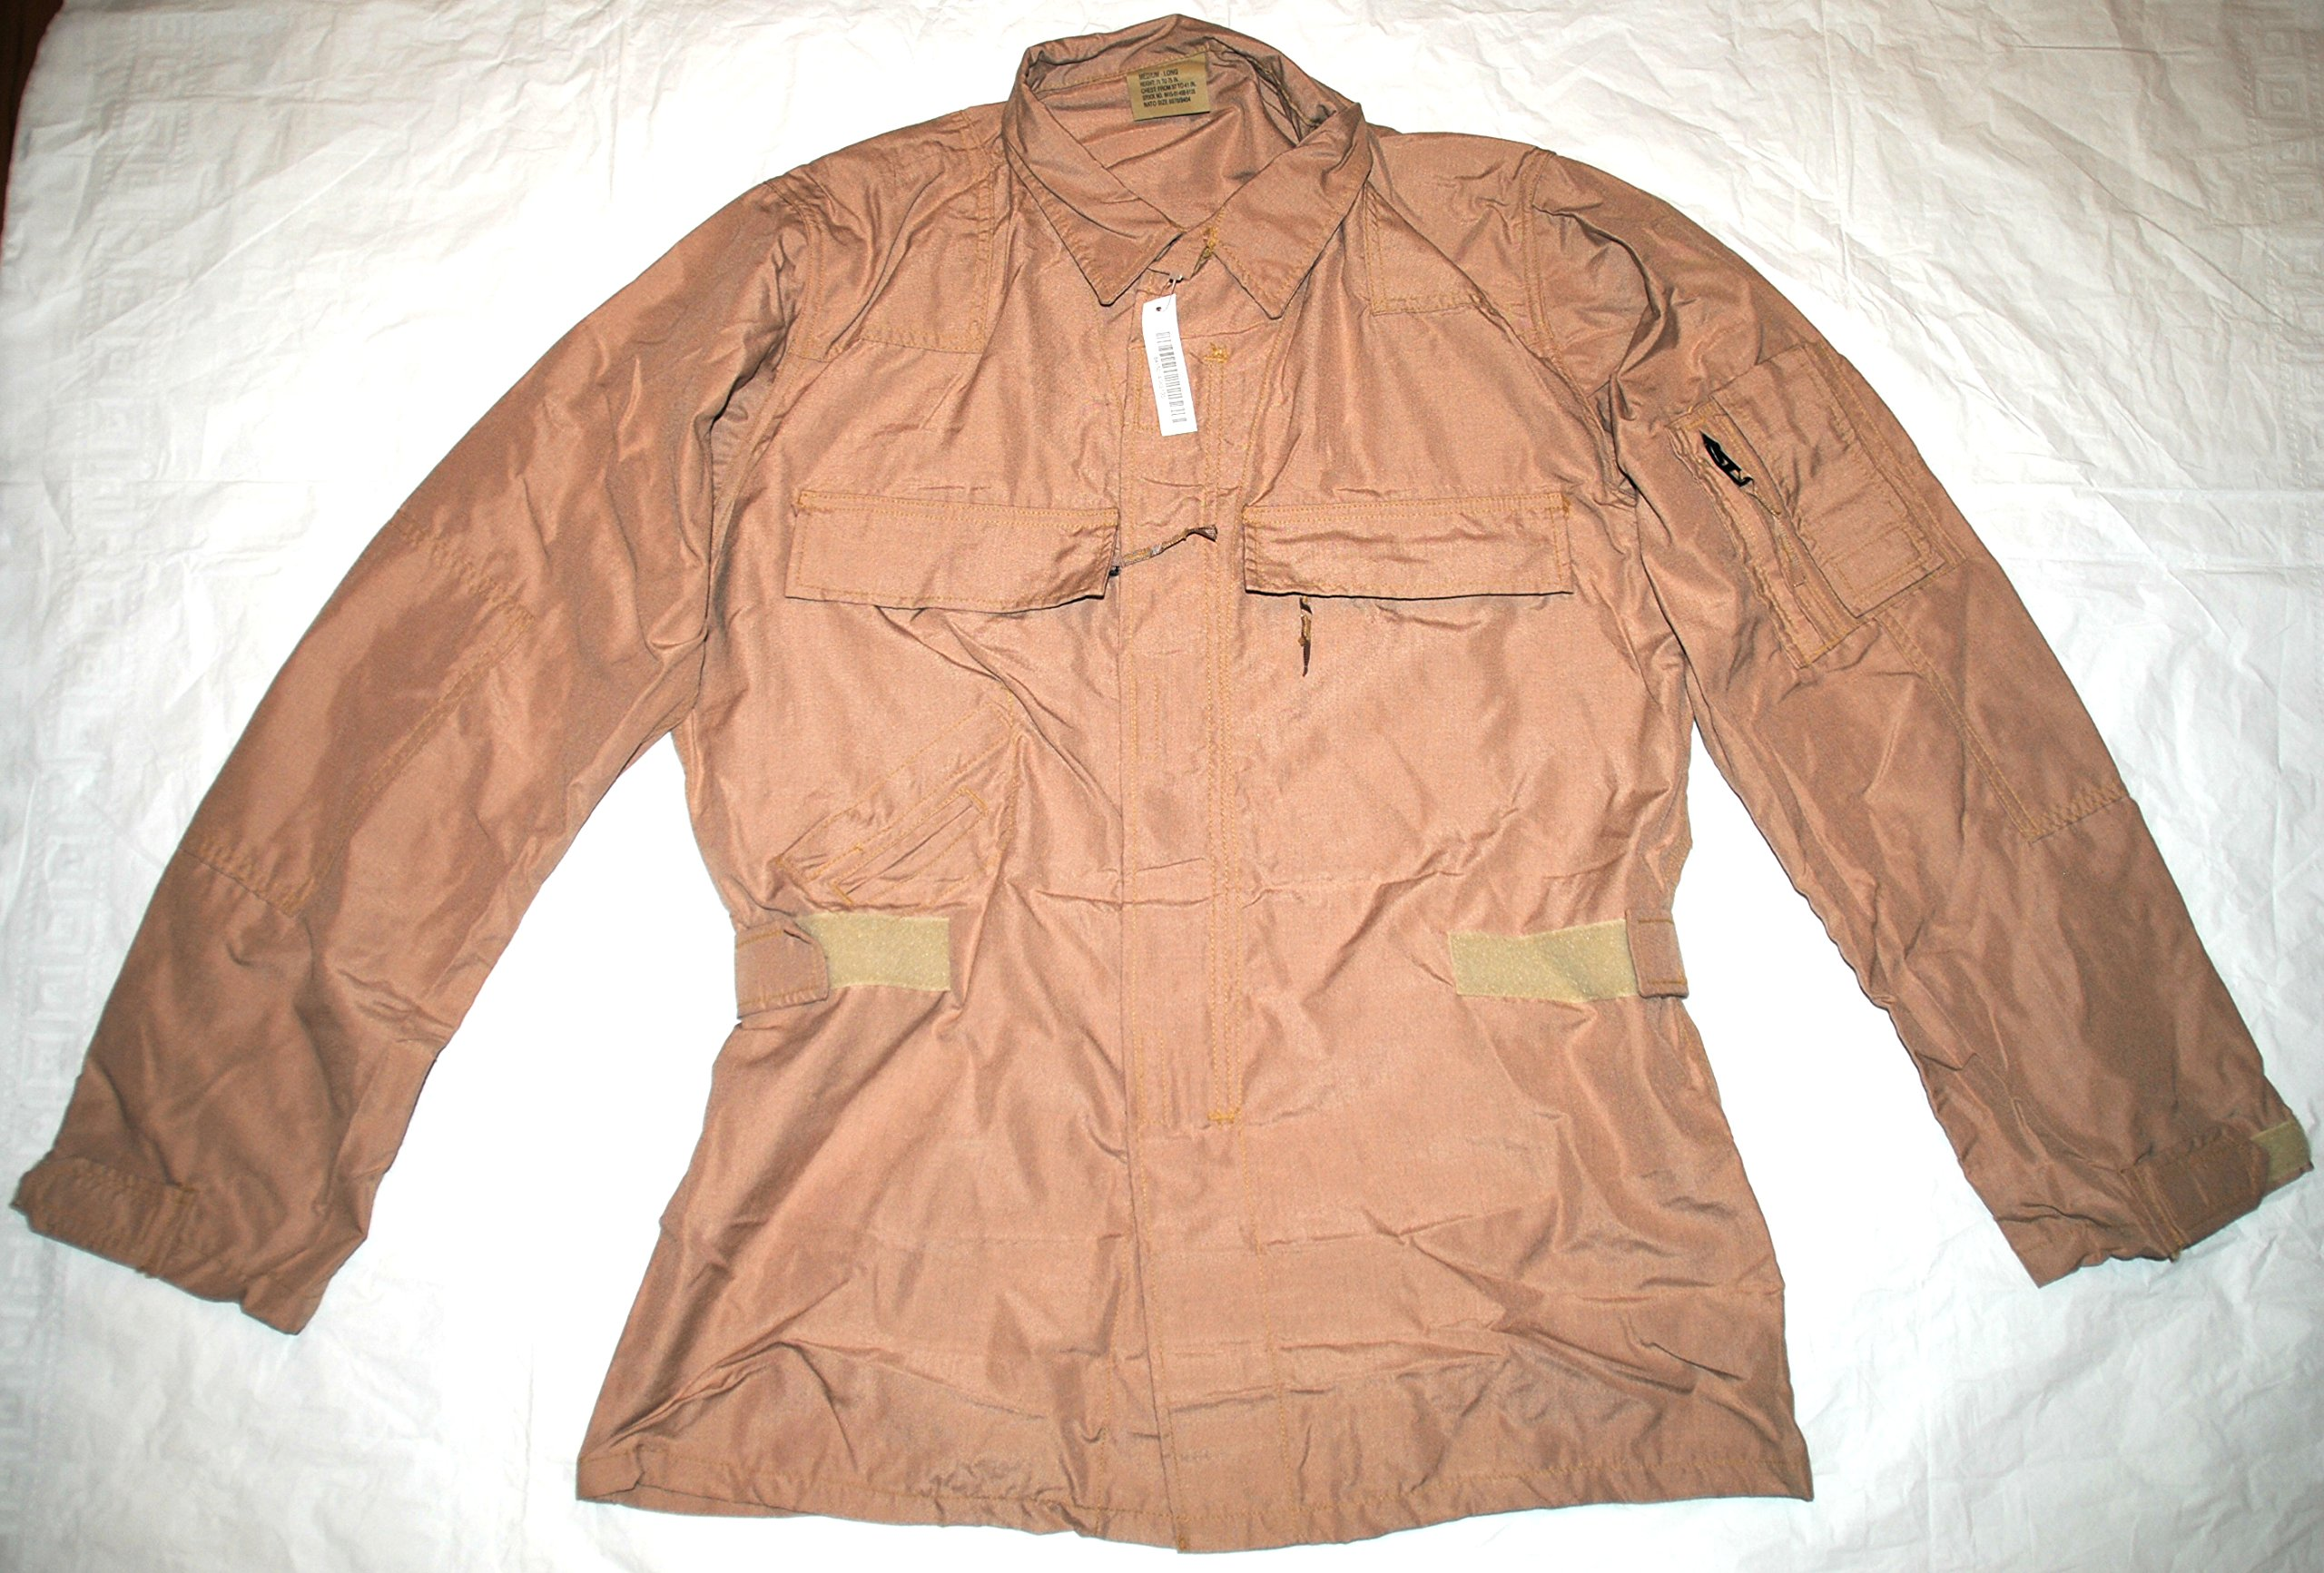 Genuine Usaf Nomex Fire Resistant Desert Flyers Aricrew Top - Medium Long by DJ MANUFACTURING